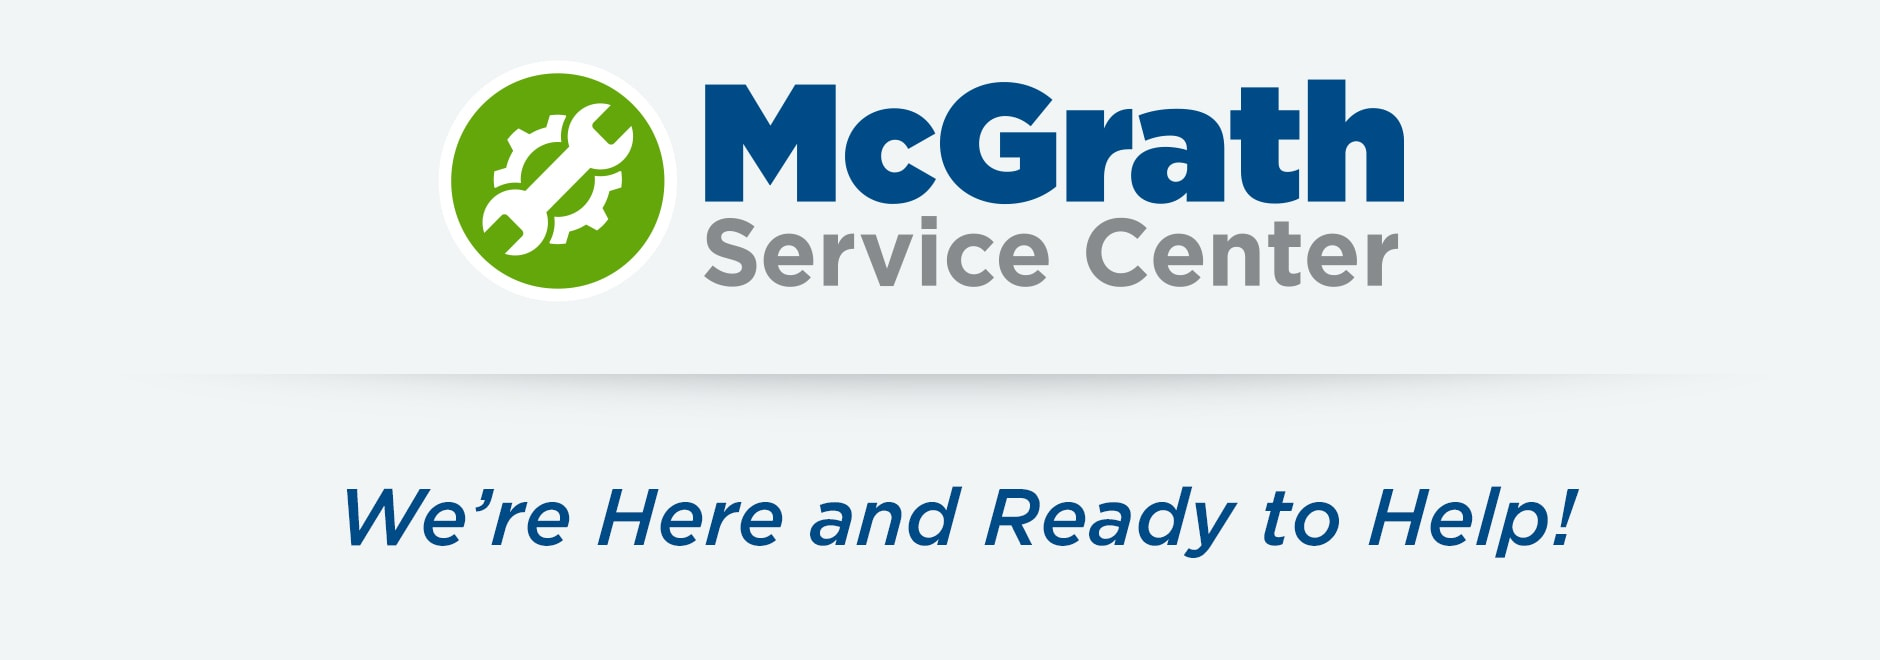 McGrath Service Department - We're Here and Ready to Help!